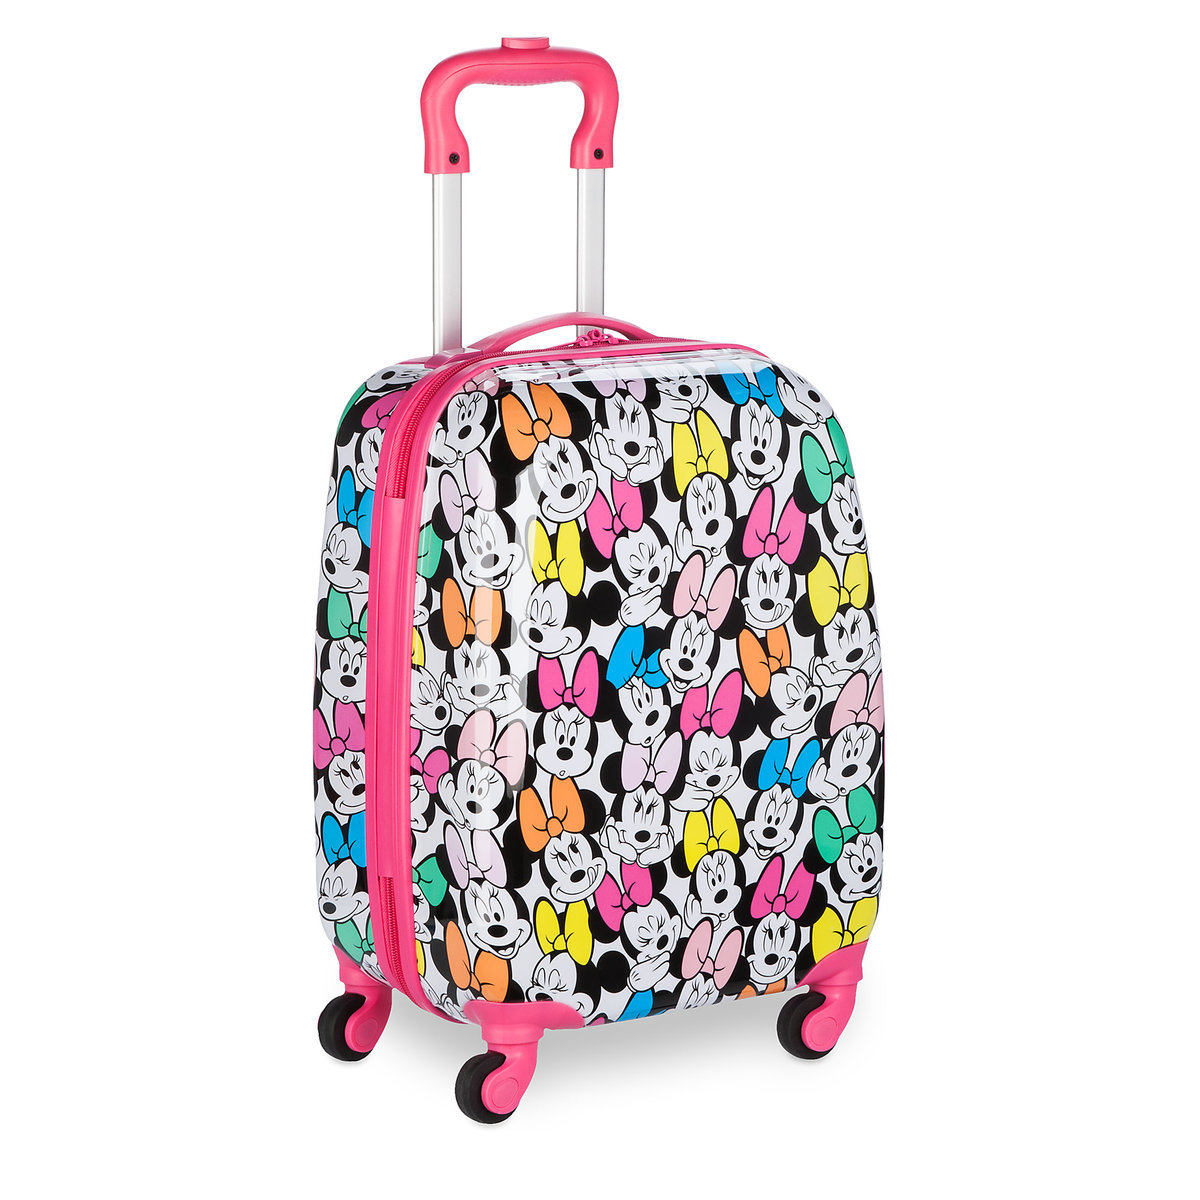 d392e06cea0 Product Image of Minnie Mouse Rolling Luggage for Kids   1